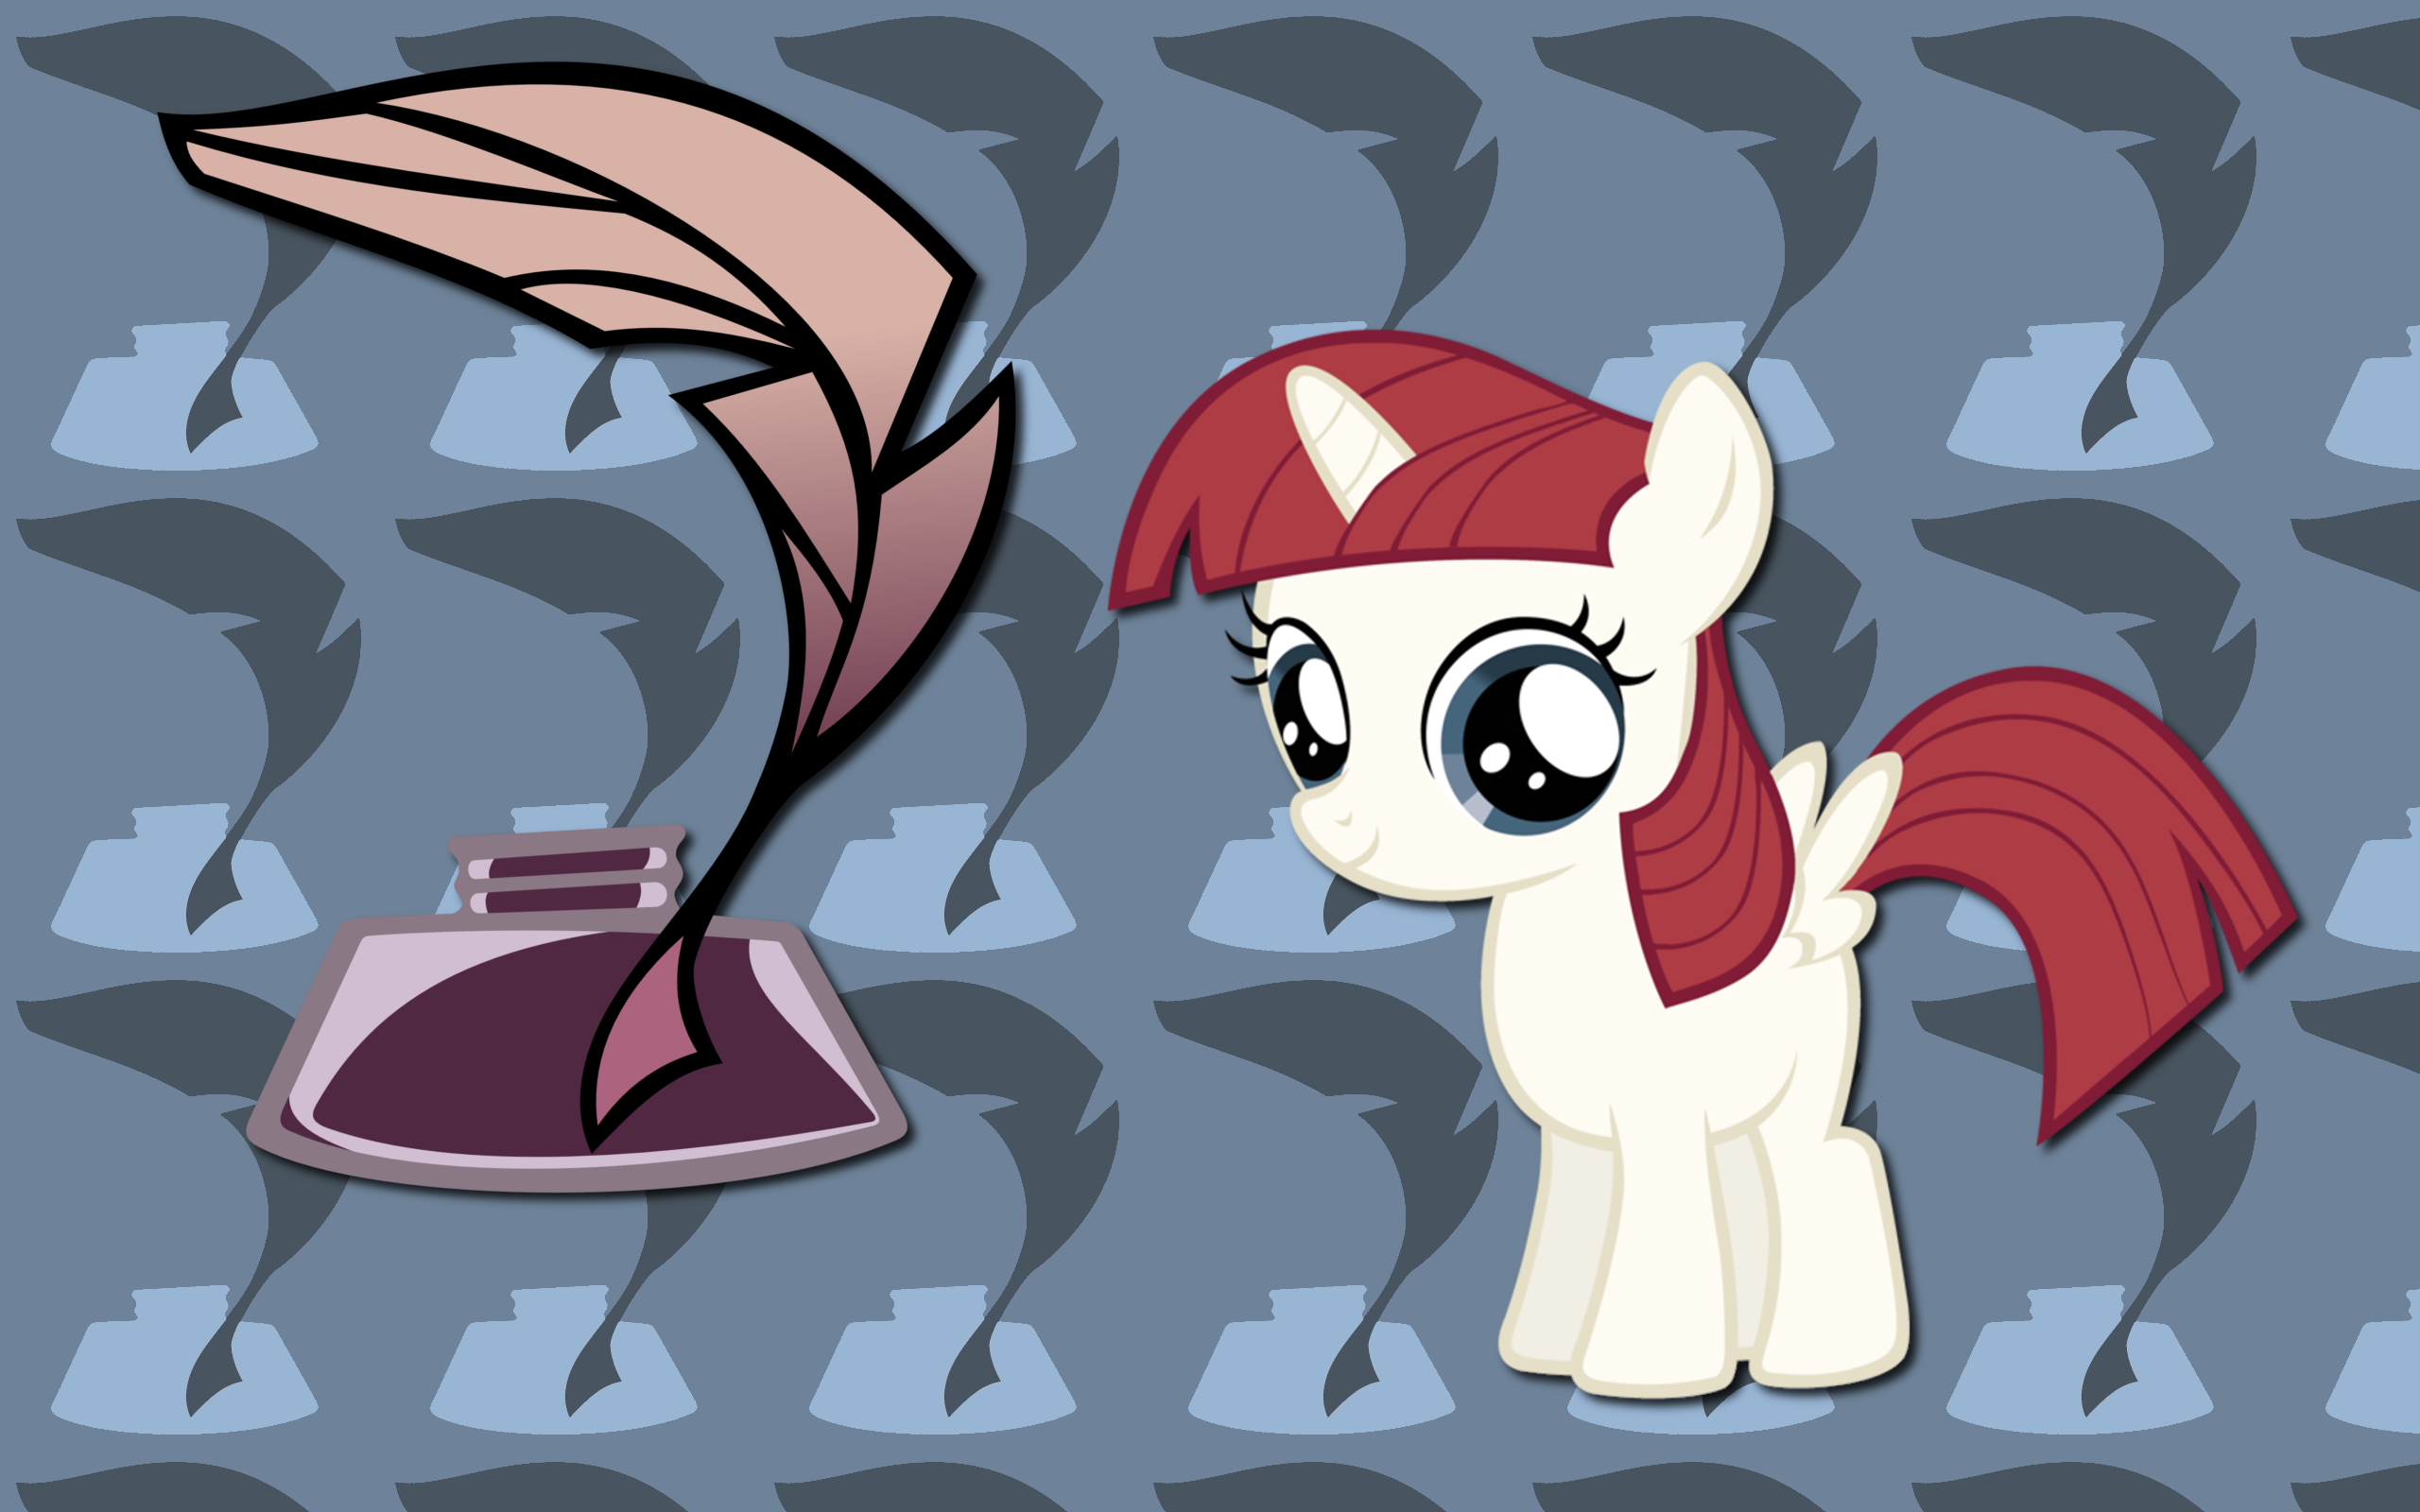 OC Filly Lauren Faust WP by AliceHumanSacrifice0, duelingrose and The-Smiling-Pony